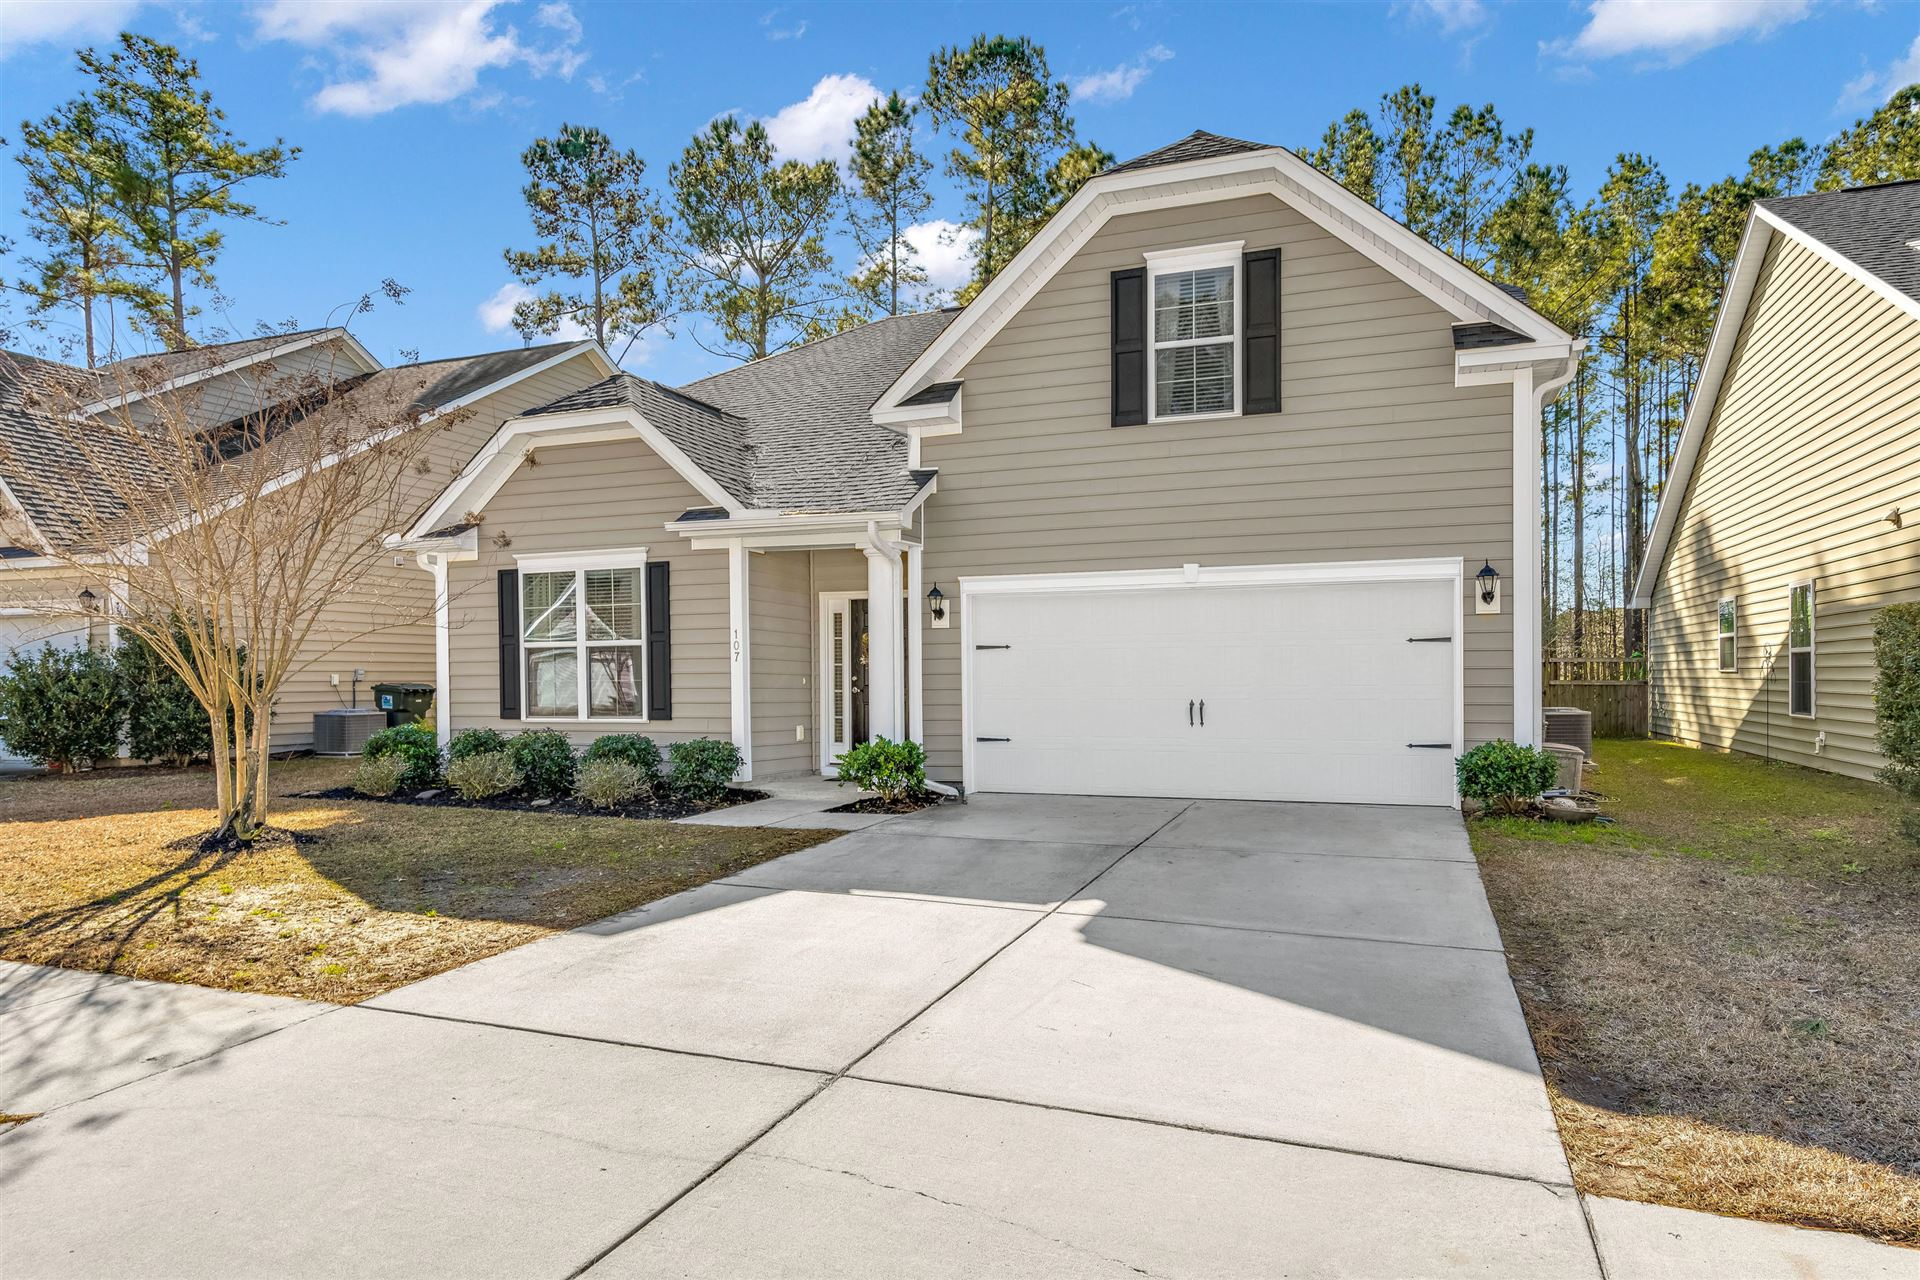 Photo of 107 Springbank Court, Moncks Corner, SC 29461 (MLS # 21002190)